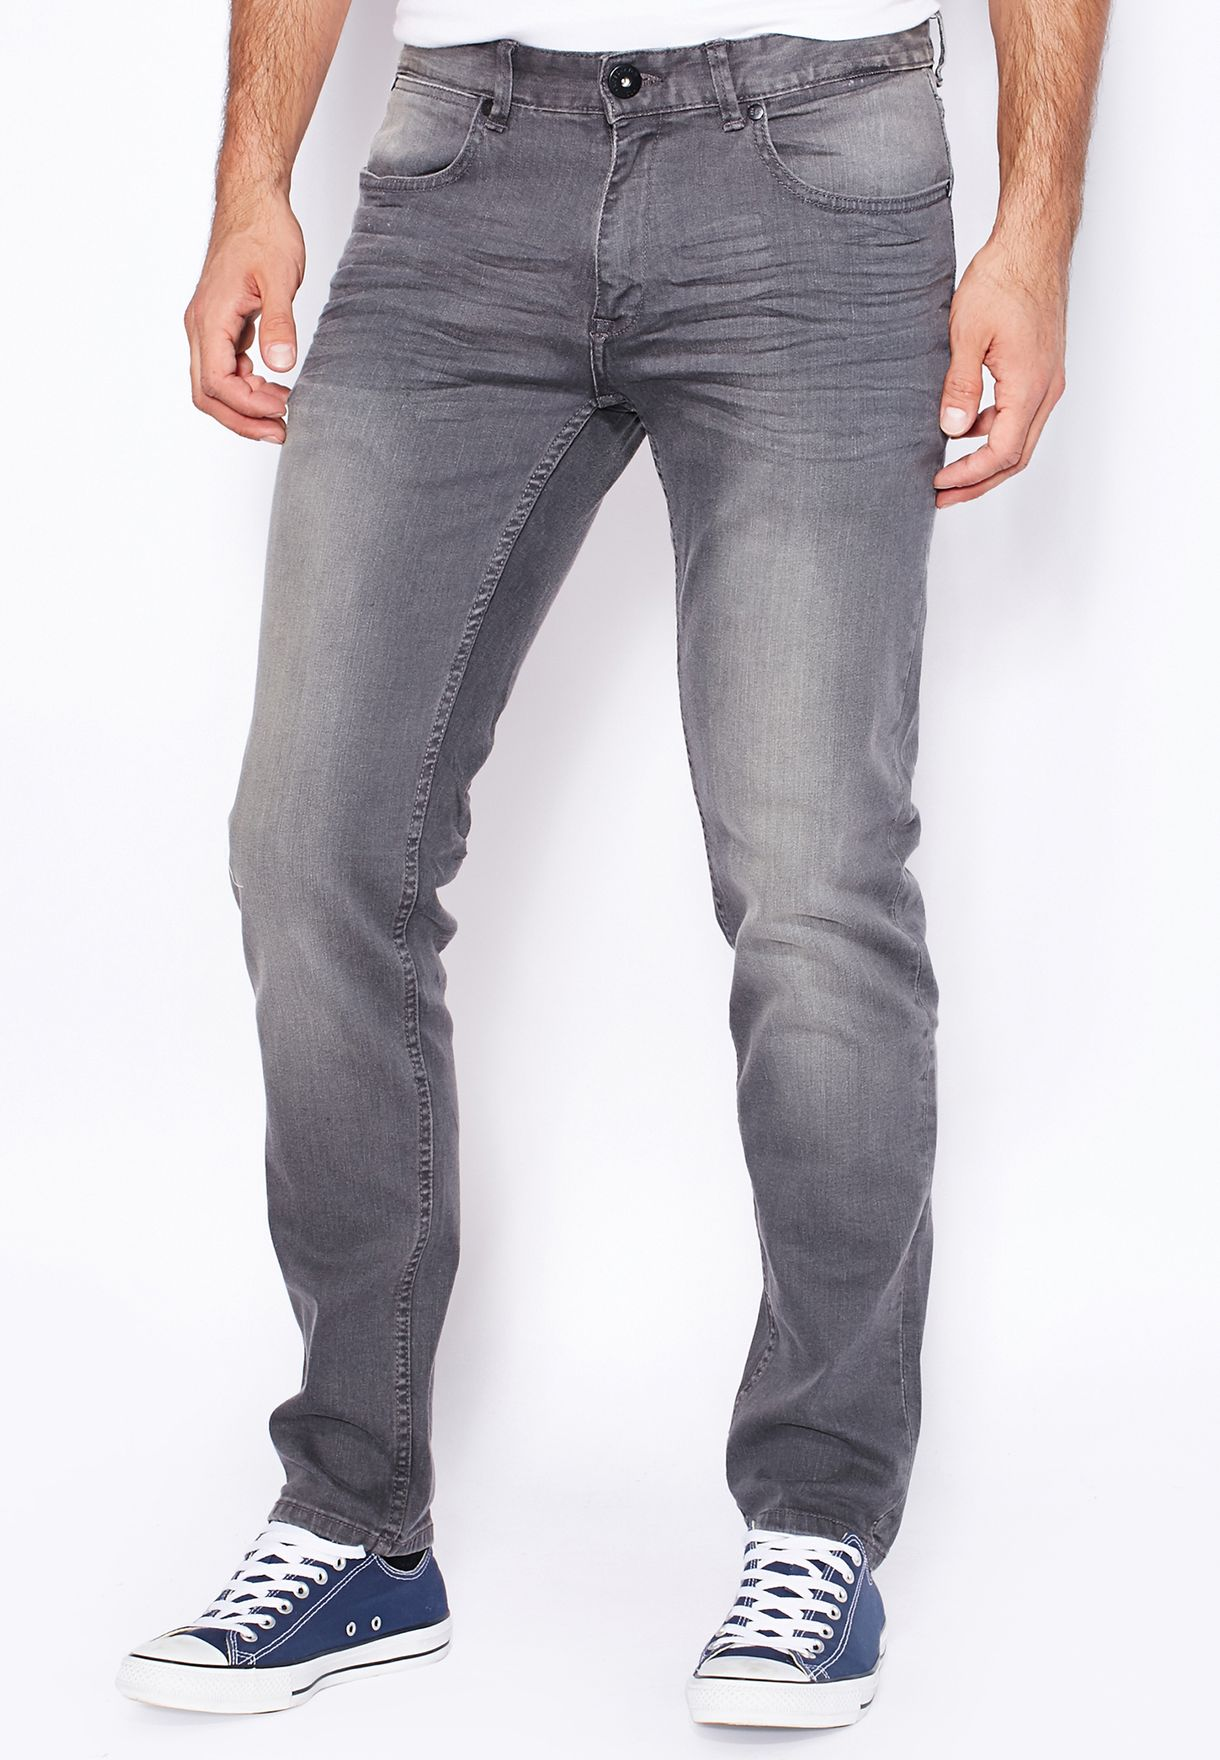 a967e447be Shop Cross Hatch grey Jaco Skinny Fit Mid Wash Jeans for Men in Oman ...